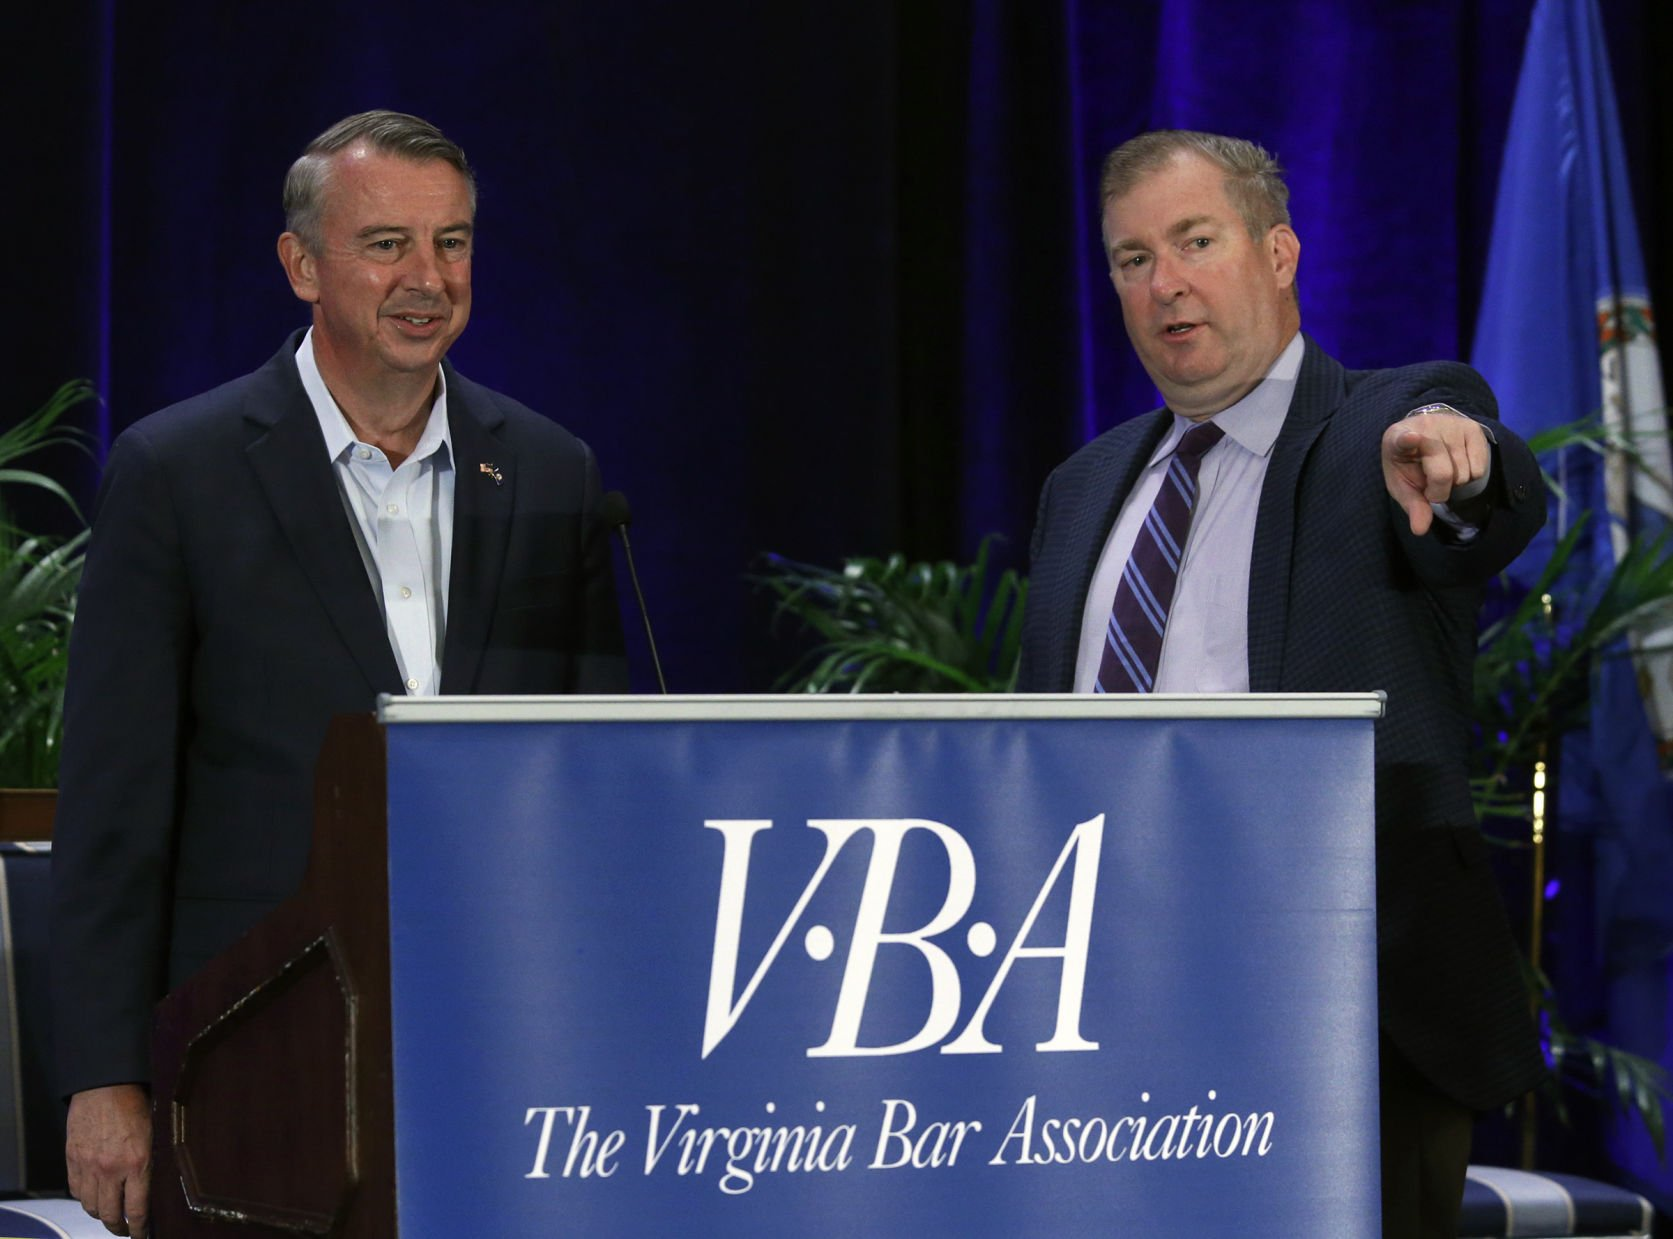 Pemberton native Ed Gillespie tied in Virginia's gubernatorial race